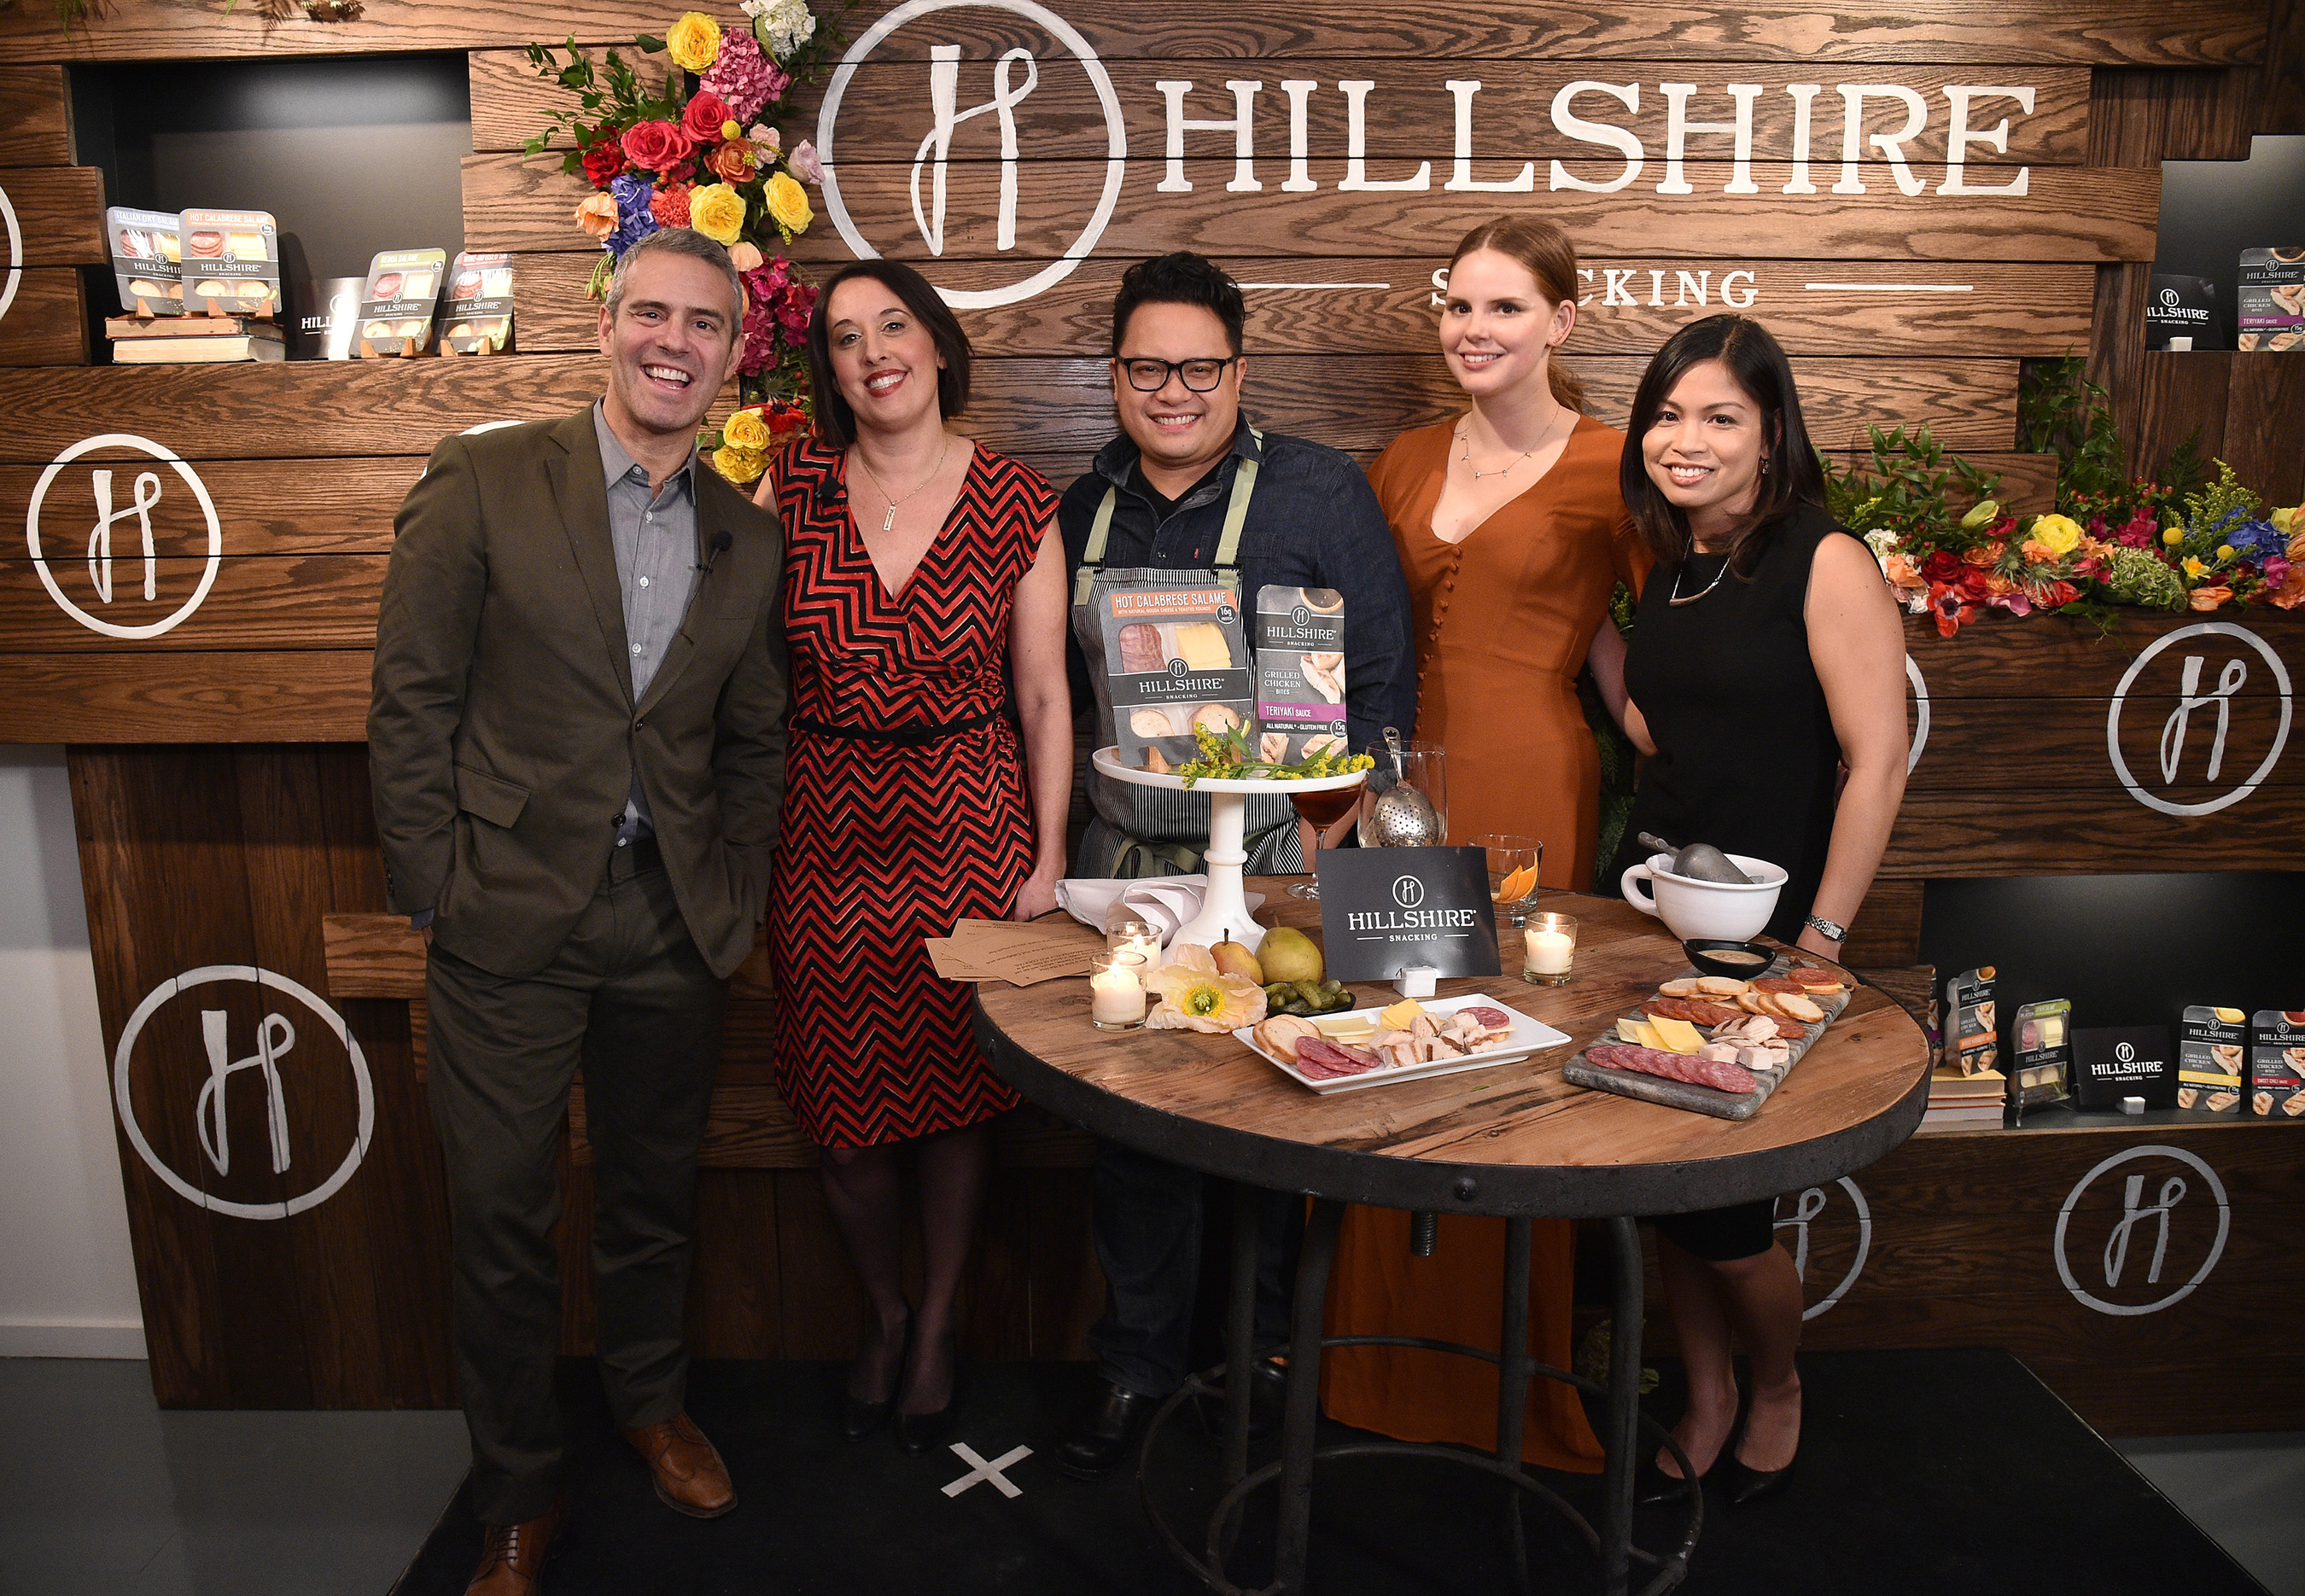 Say cheese! Chefs, mixologists & foodies celebrate snacking at the Hillshire Snacking launch event in NYC.